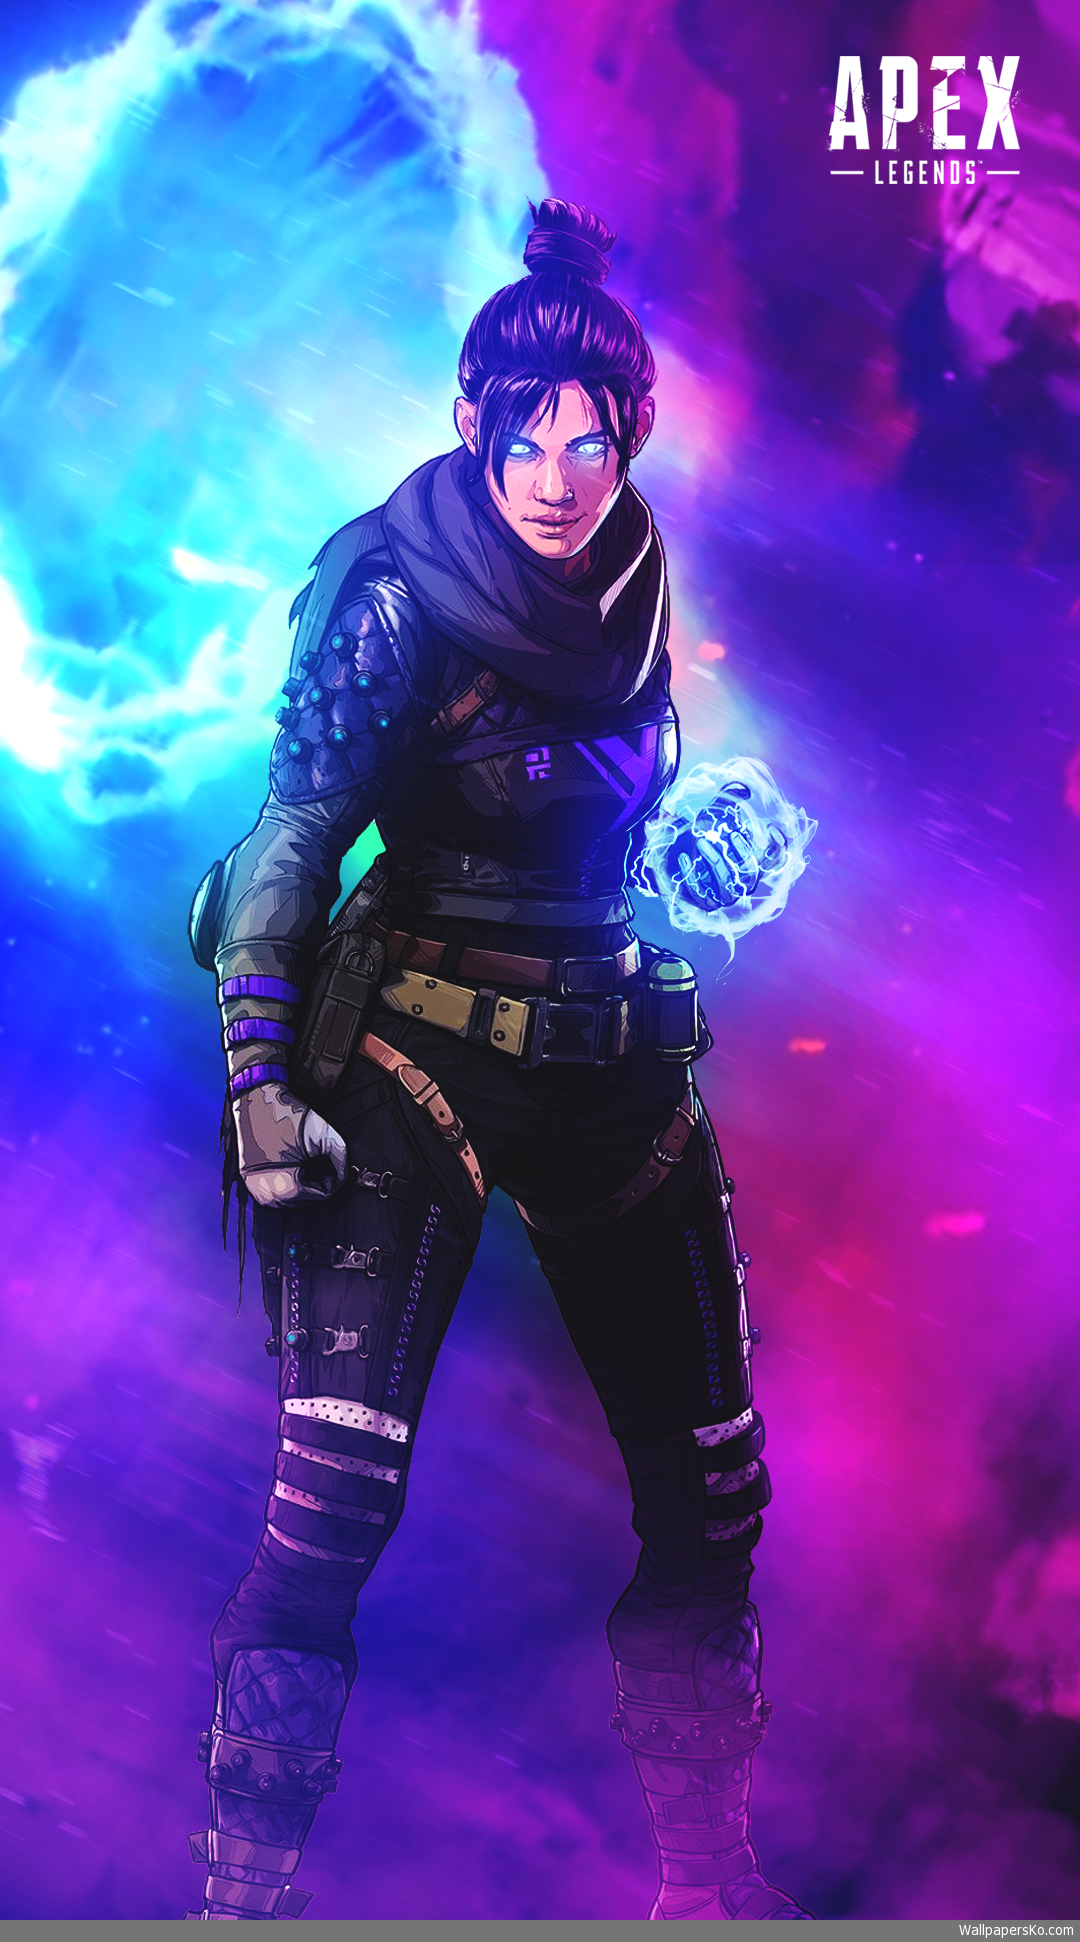 Apex Legends Wallpaper 4k Posted By Zoey Johnson